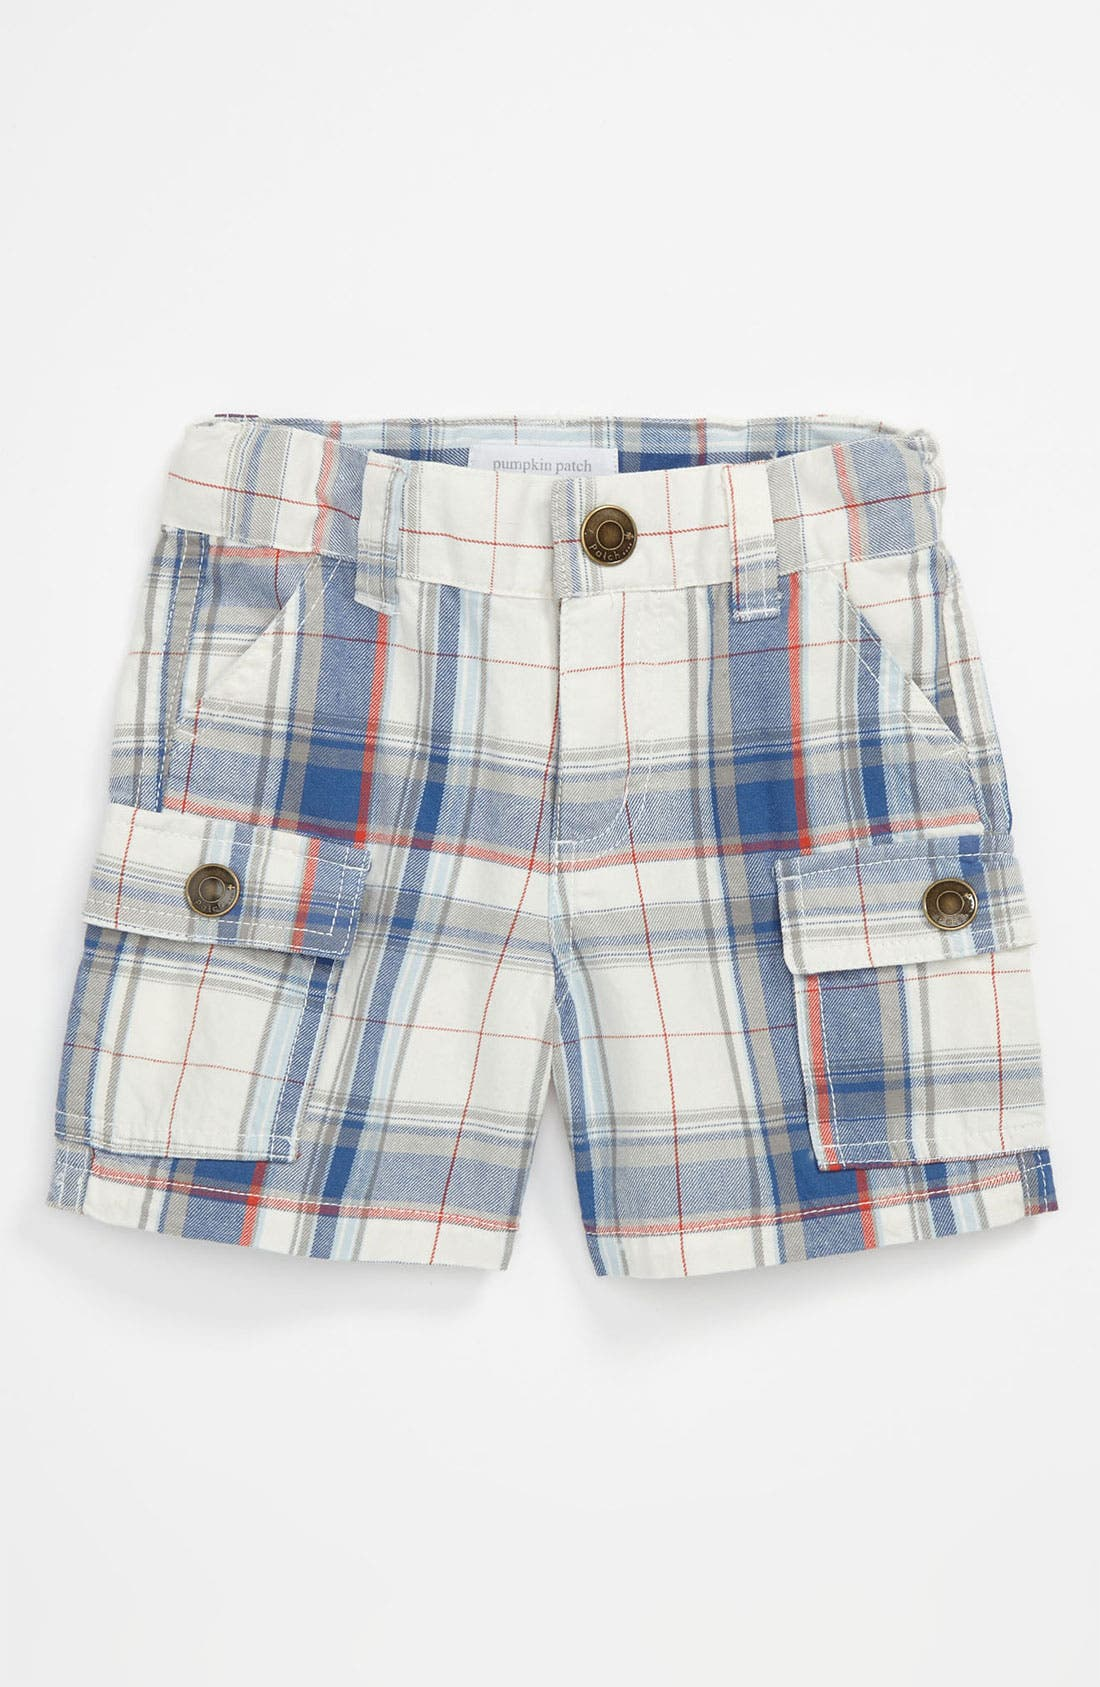 Alternate Image 1 Selected - Pumpkin Patch Plaid Cargo Shorts (Toddler)